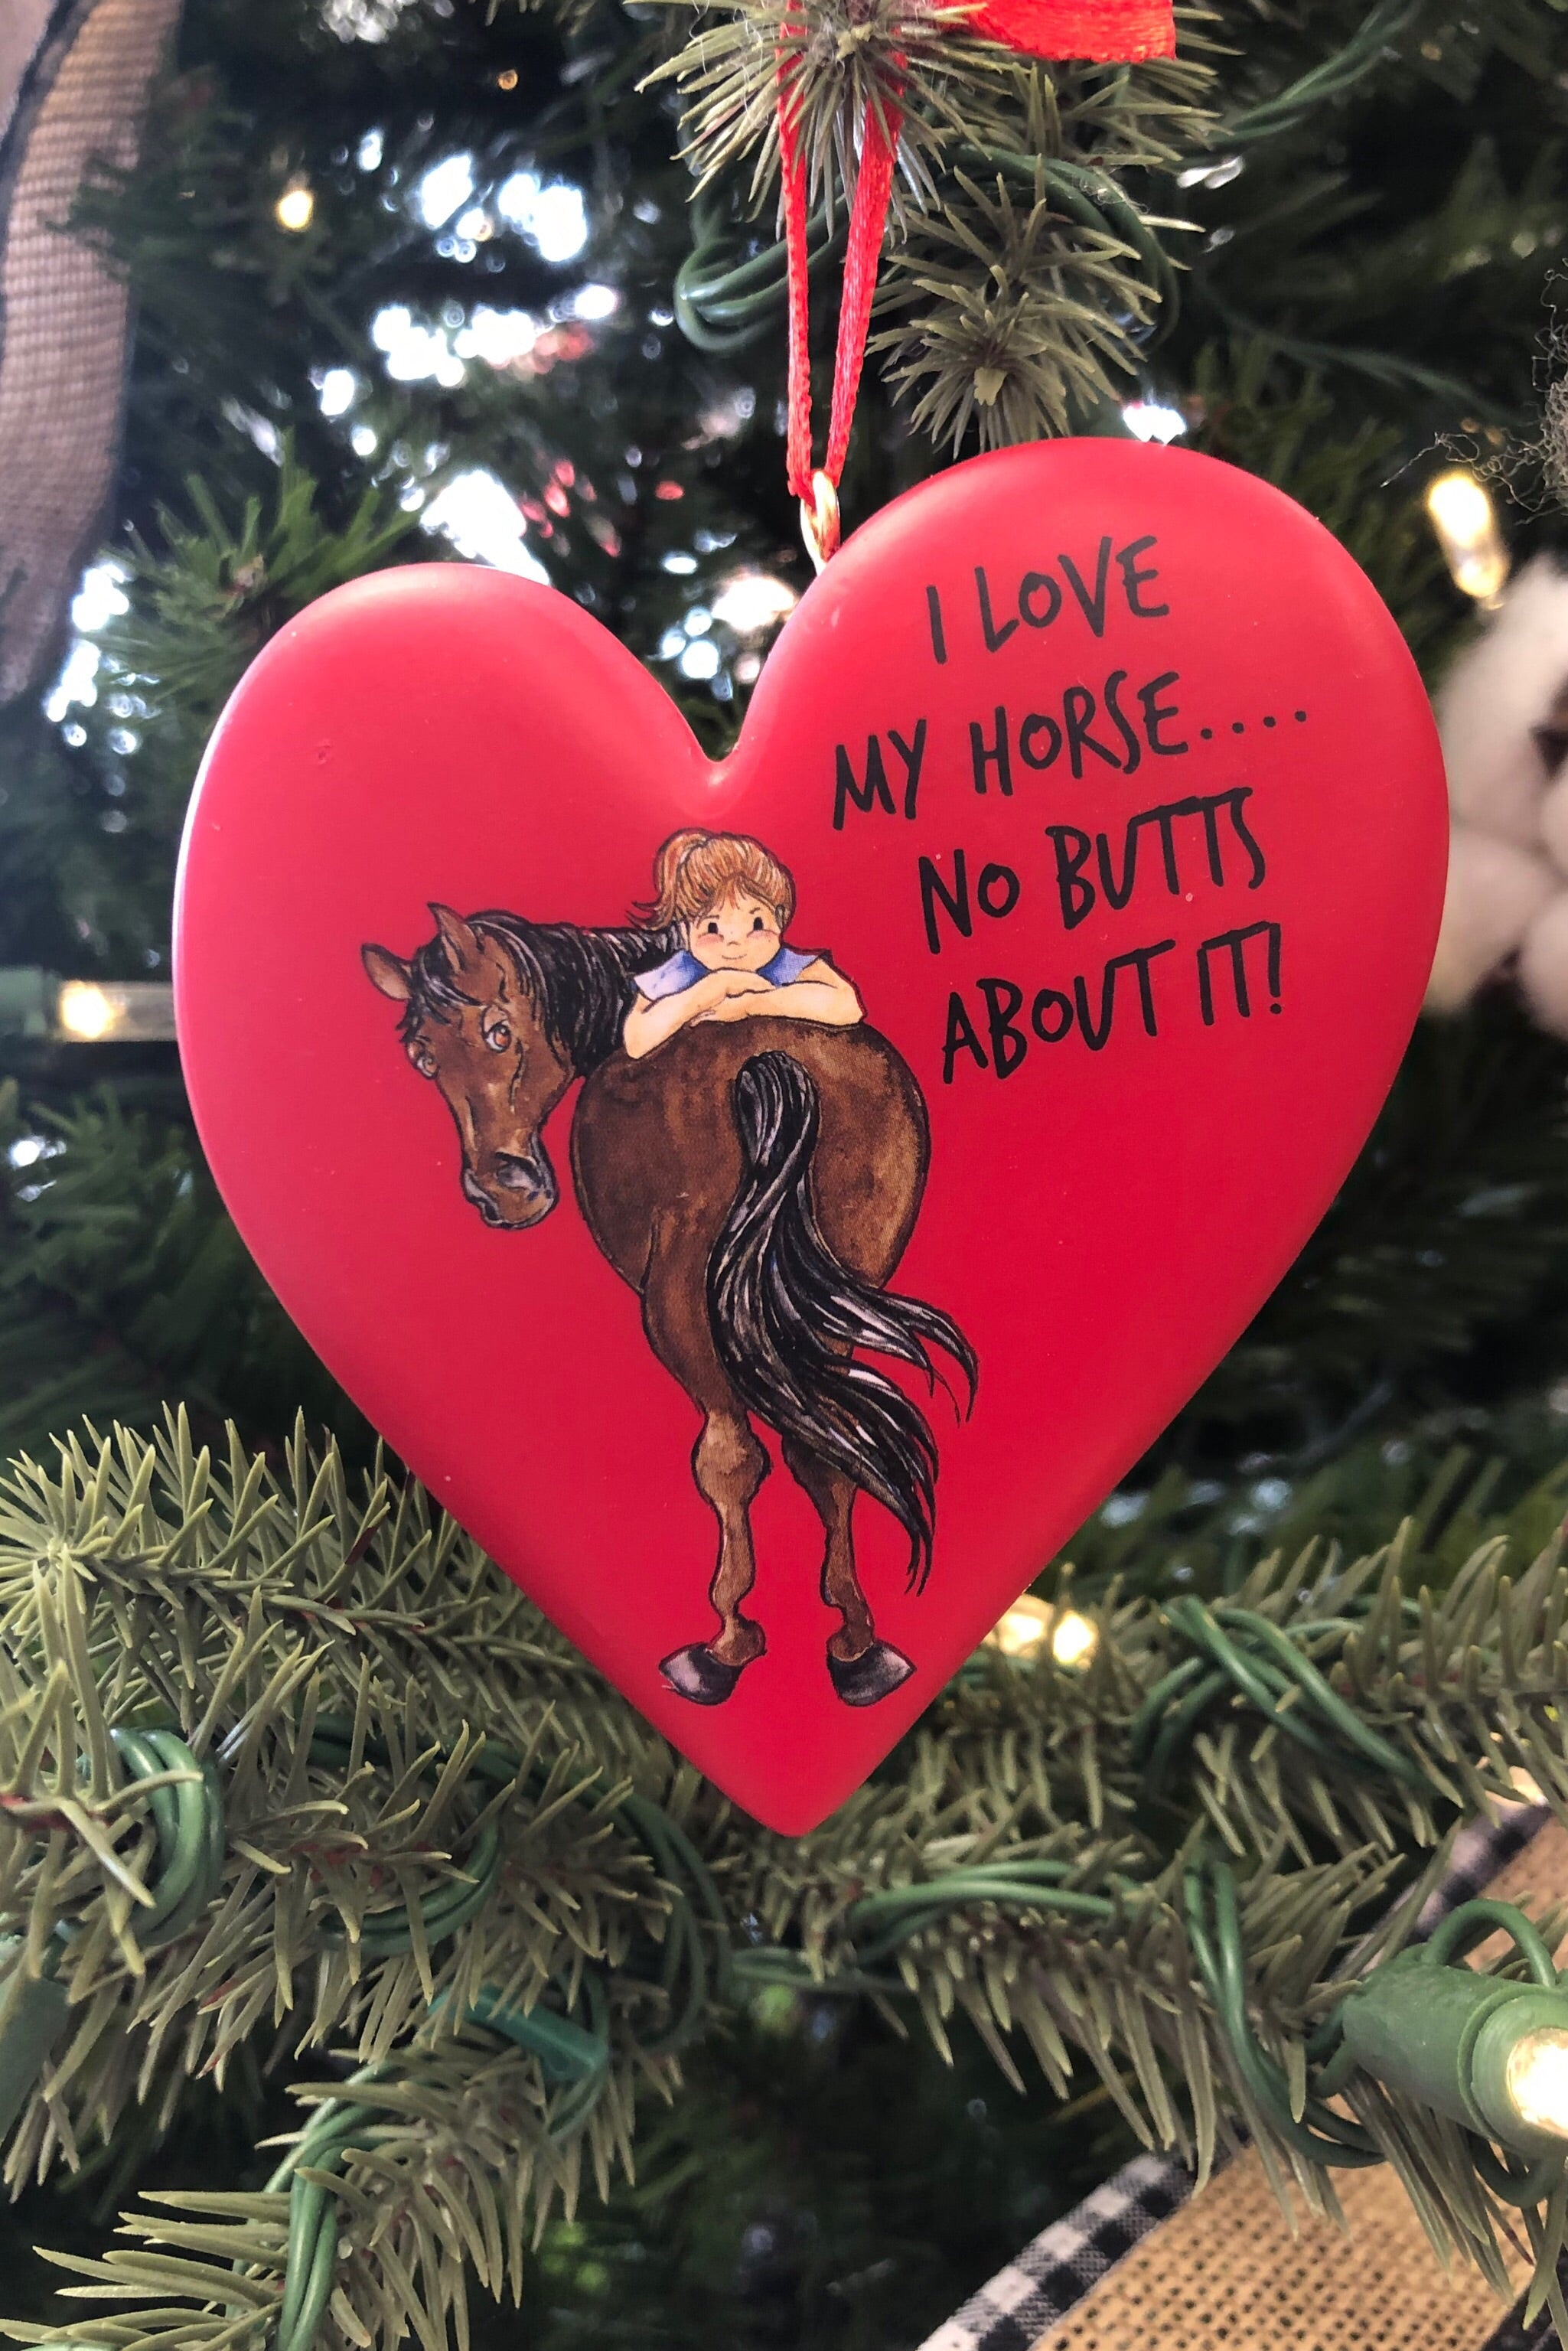 For The Love of Horse!  Heart Shaped Ornaments